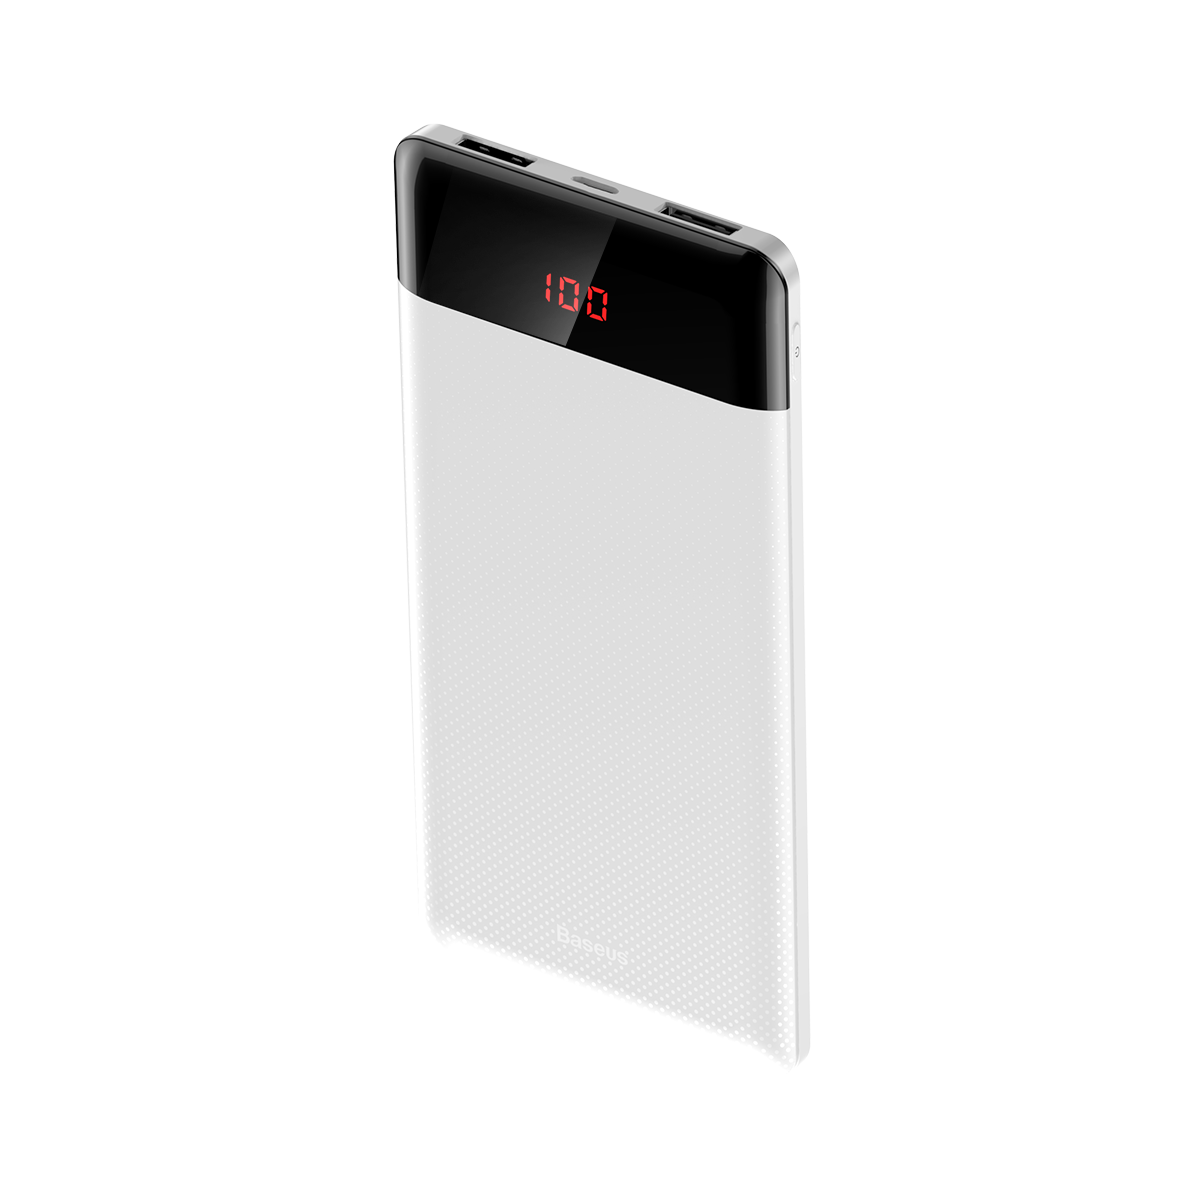 Carregador Portátil 2x USBs Baseus Mini Display 10.000 mAh